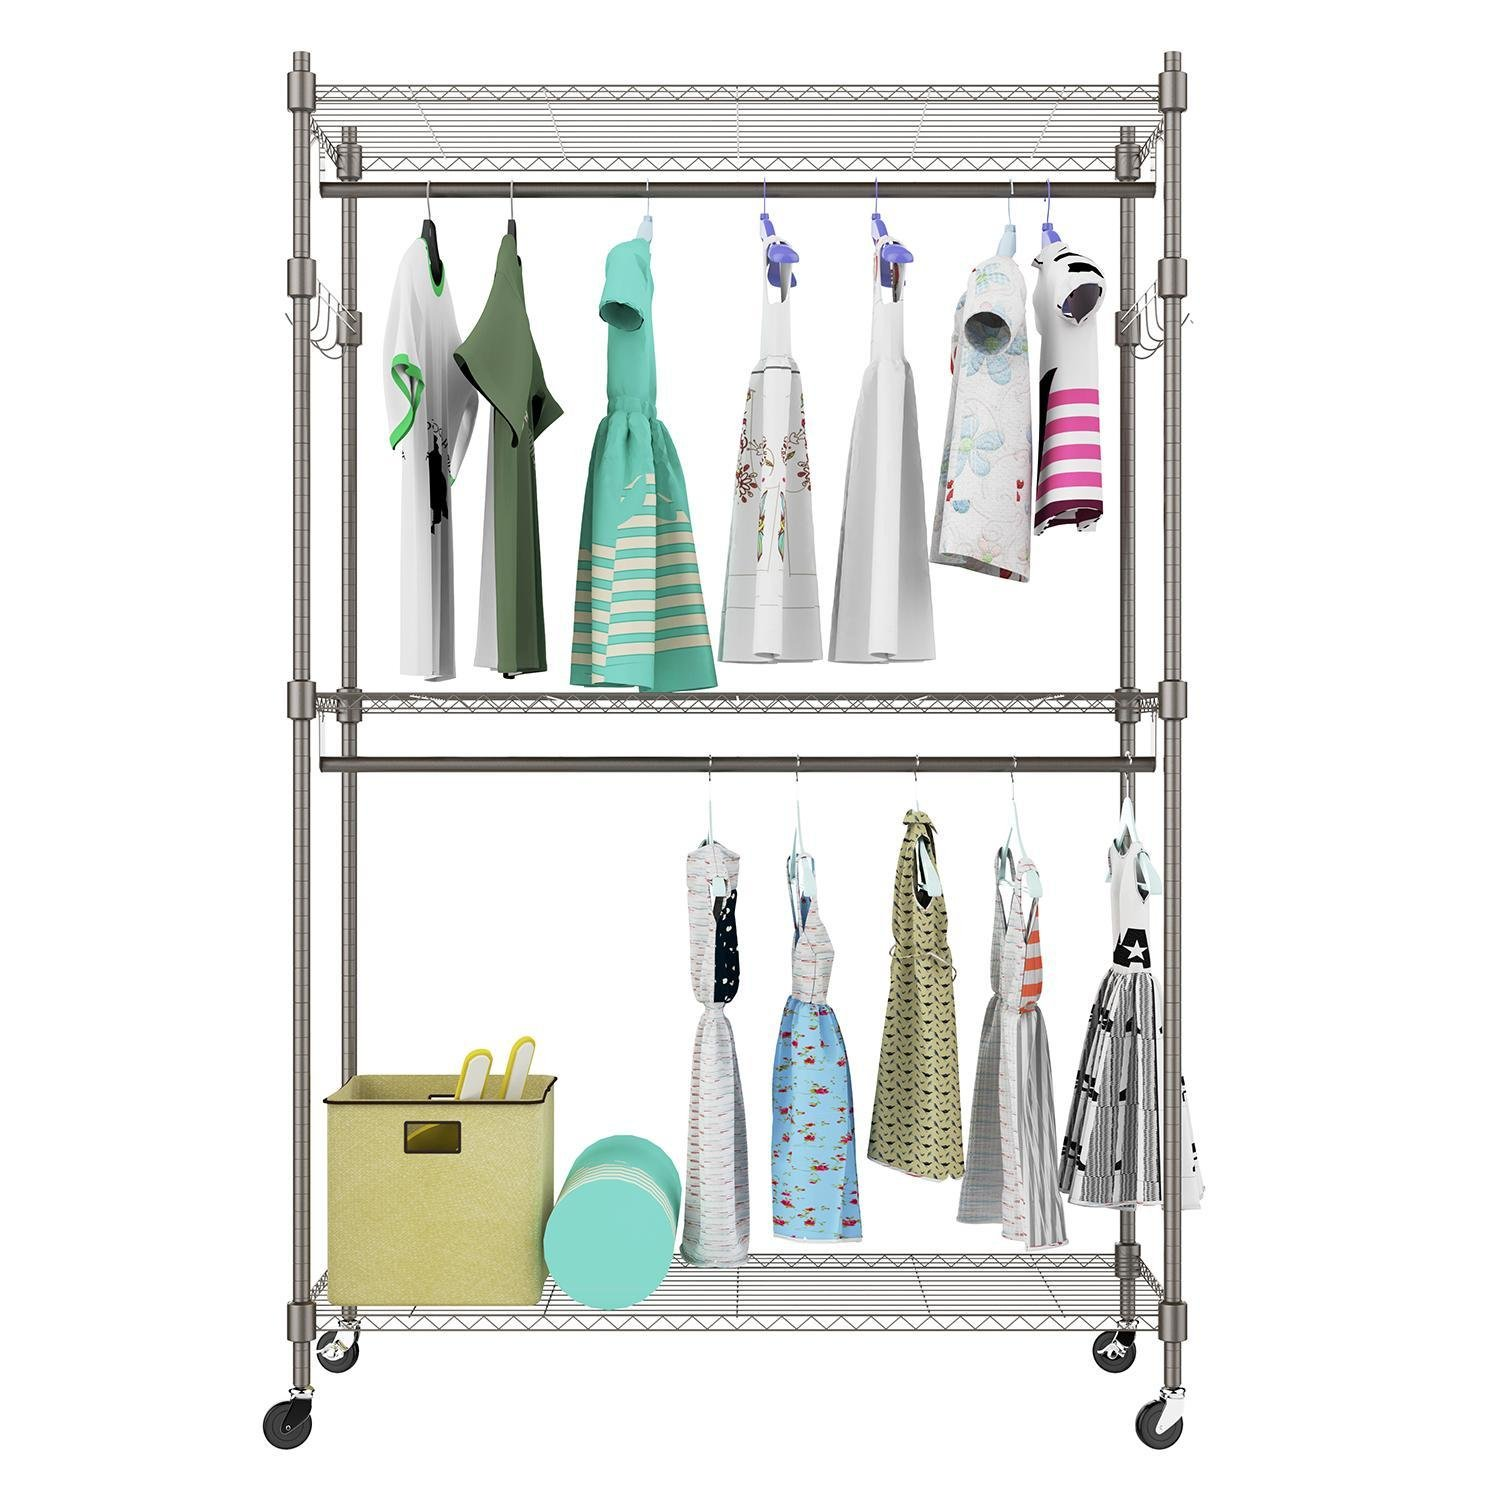 Pagacat Heavy Duty Rolling Garment Rack, Clothes Hangers Rack with Double Rods and Shelves[US Stock]